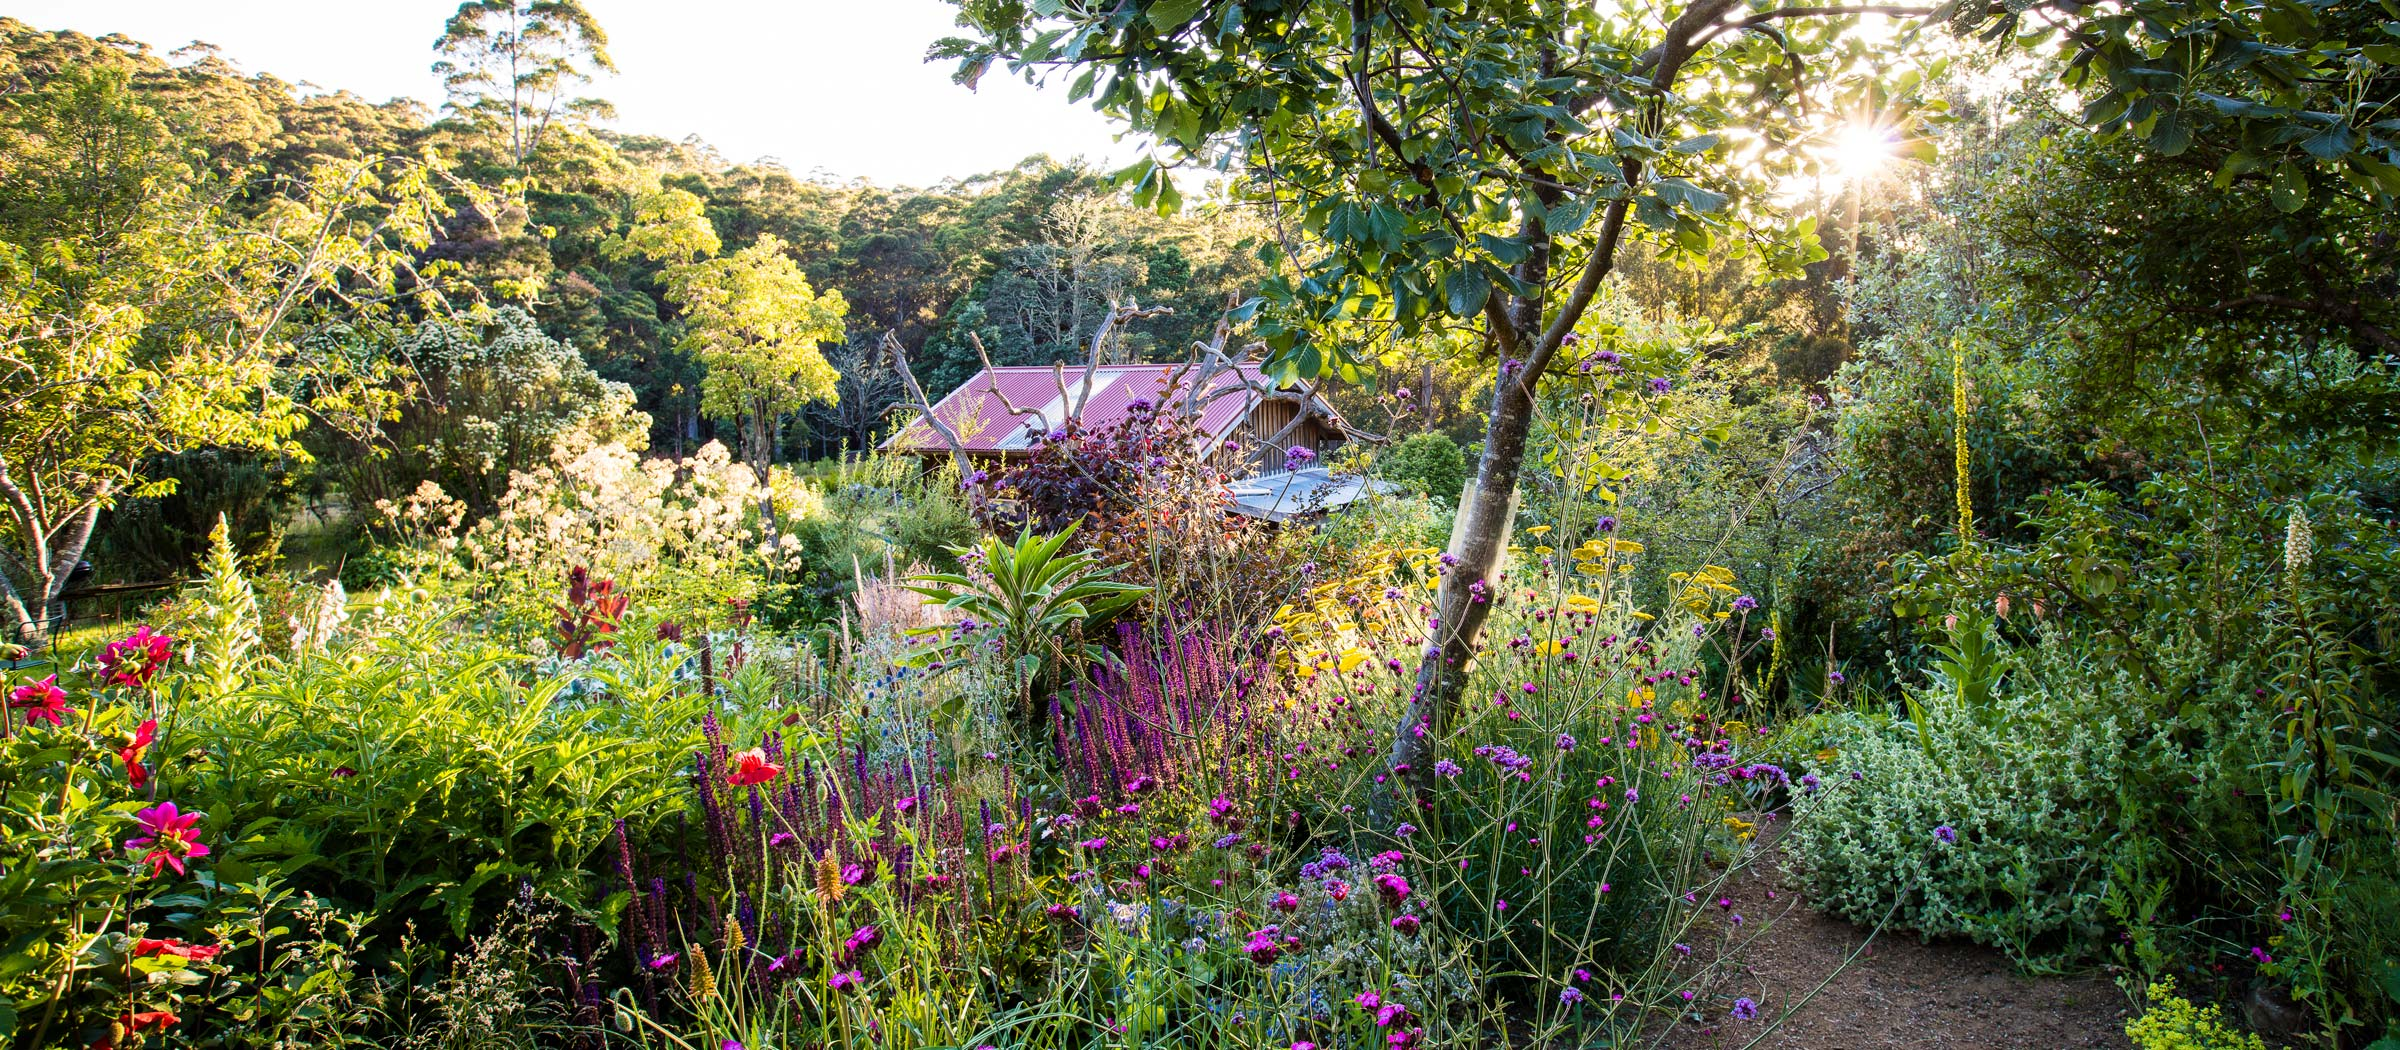 Australian Dreamscapes The Art Of Gardening The Planthunter